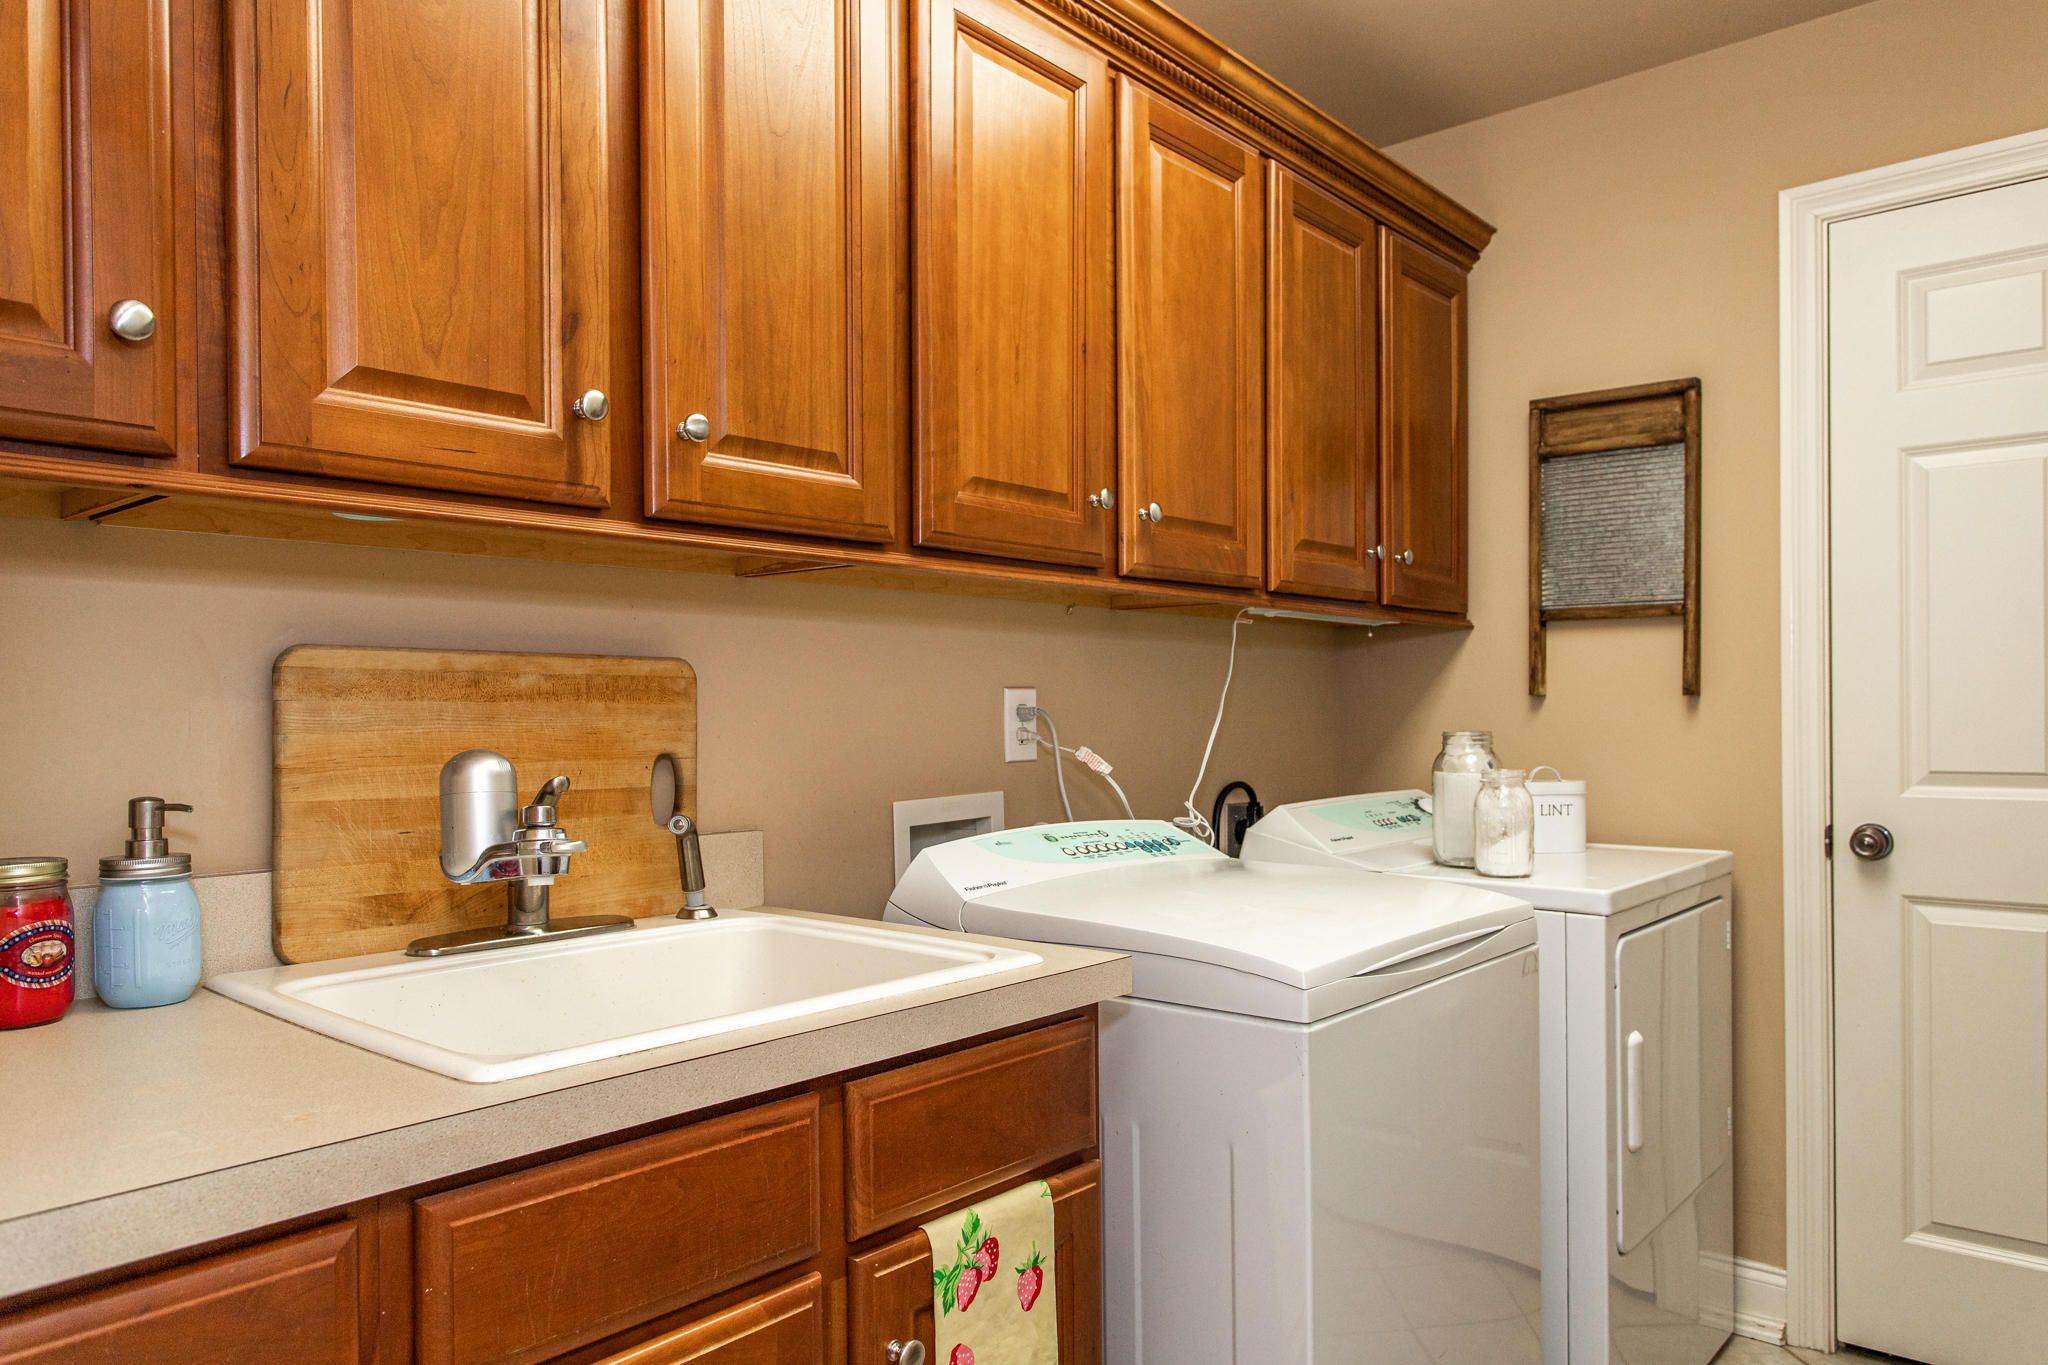 LAUNDRY ROOM WITH CABINETS AND STORAGE